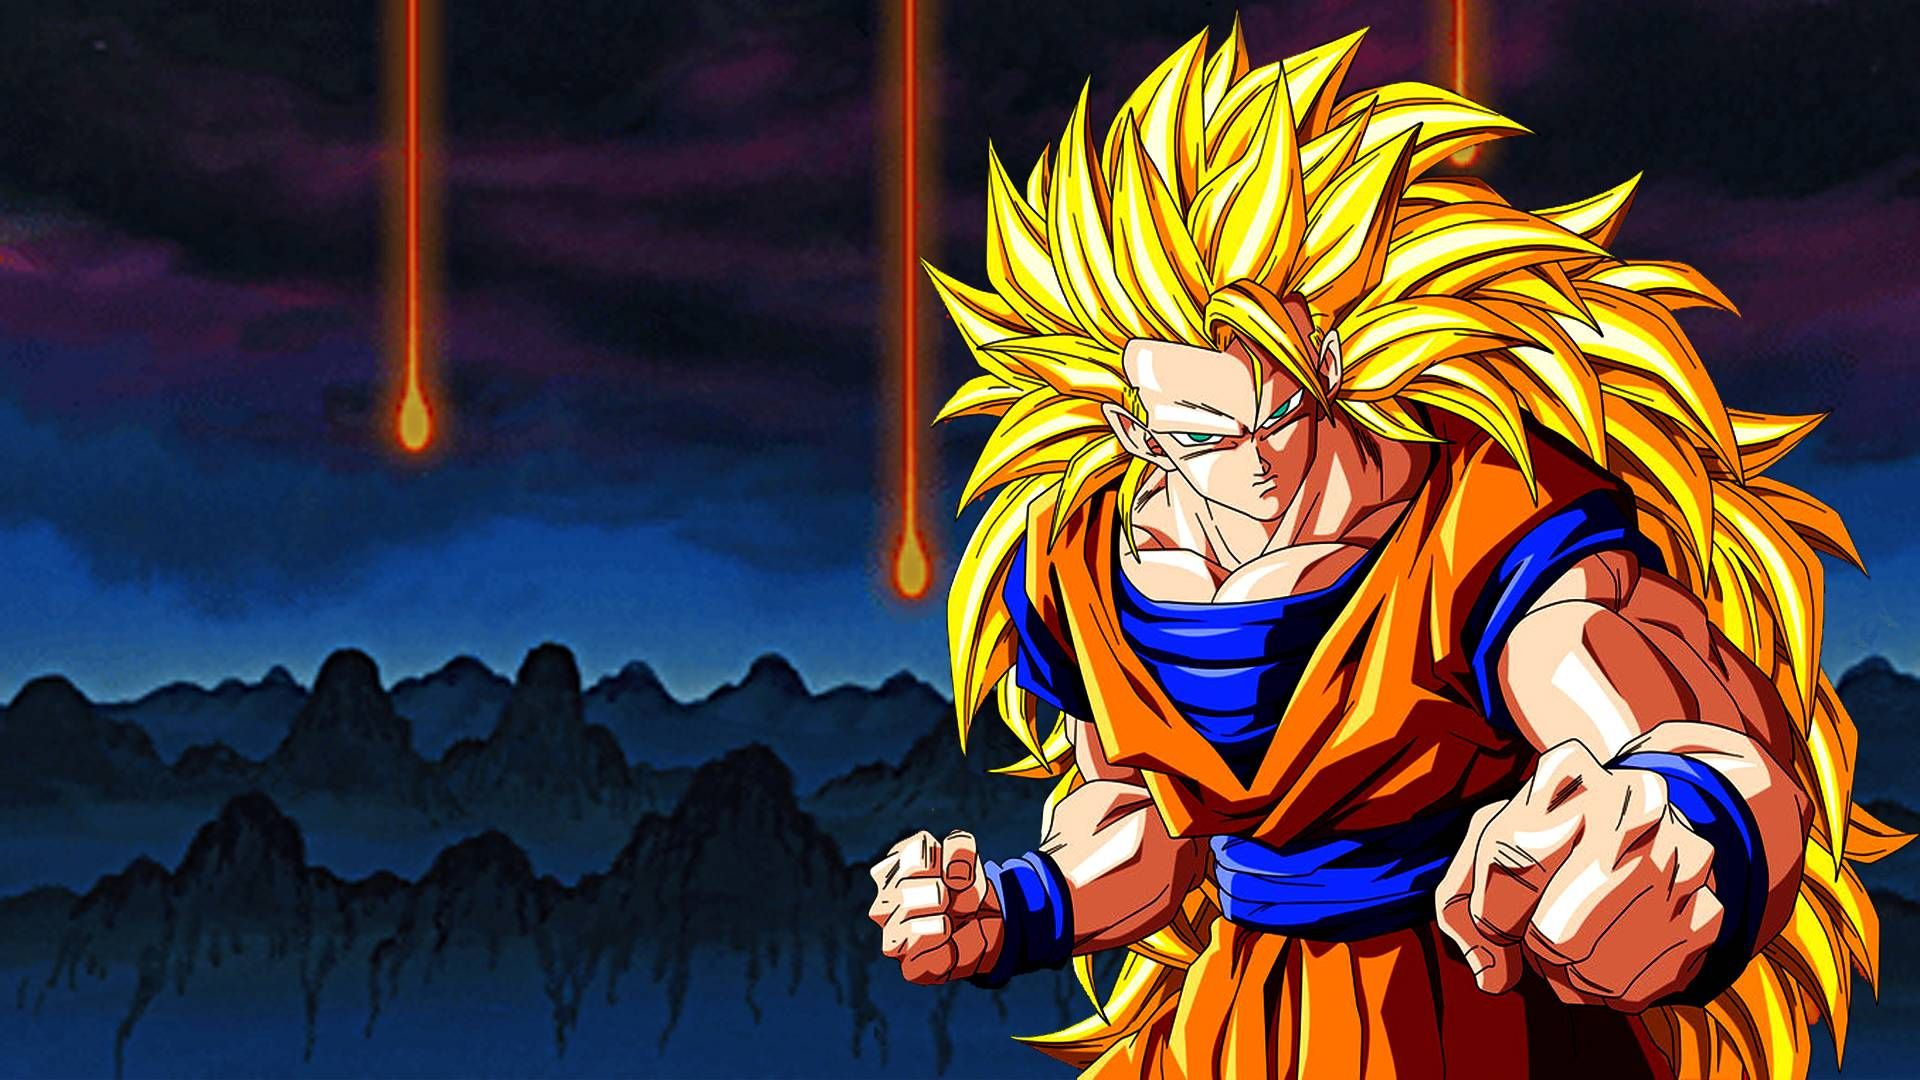 Dragon Ball Z Wallpapers Hd Wallpapers Backgrounds Of Your Choice Dragon Ball Wallpapers Goku Wallpaper Dragon Ball Super Wallpapers